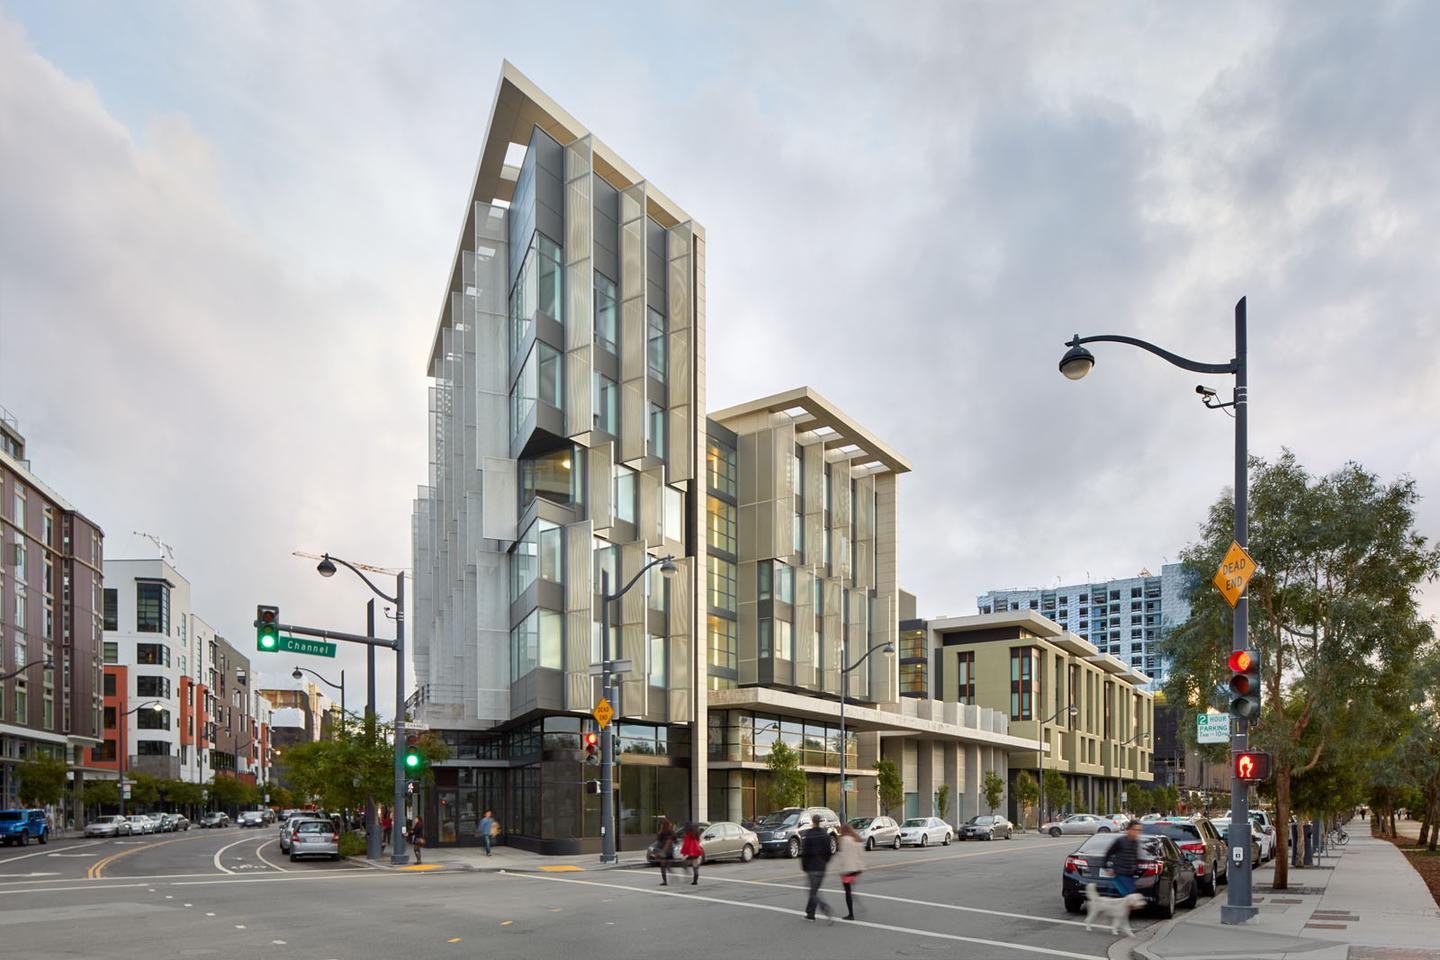 1180 Fourth Street in San Francisco, was designed by Mithun and offers affordable housing to 150 low income, very low income and formerly homeless families and individuals